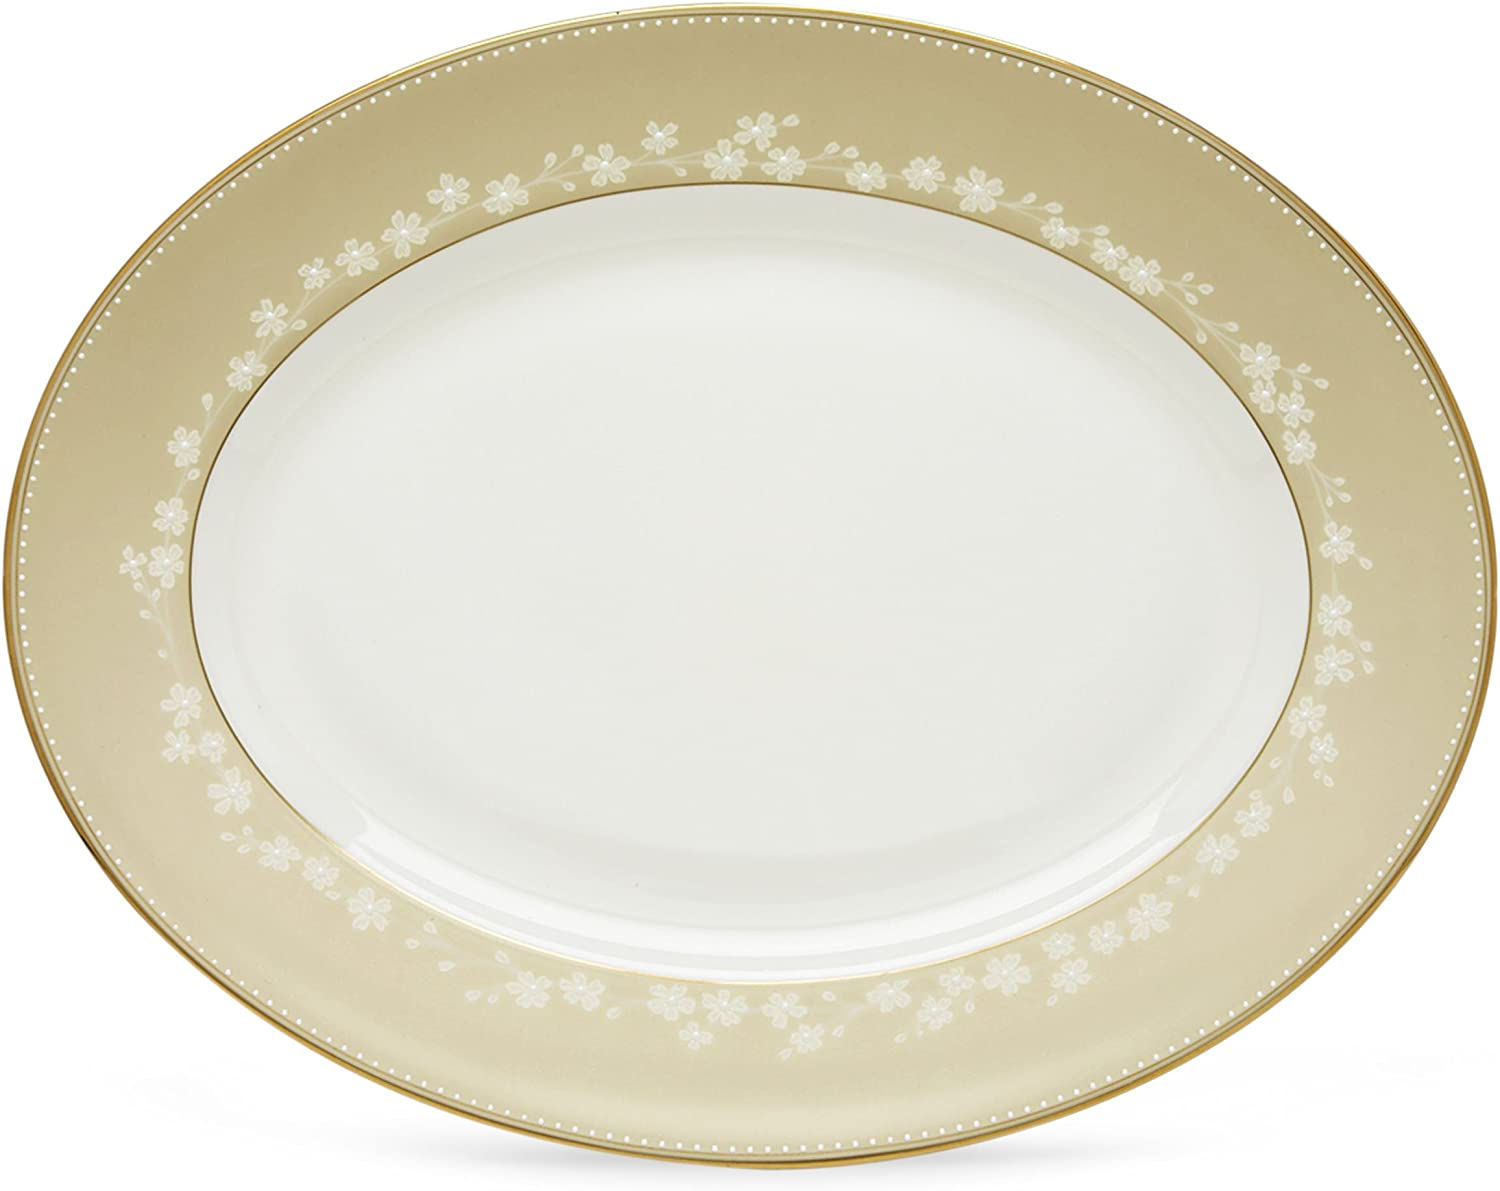 Lenox Bellina Gold Oval Limited time for free shipping 13.0 shipfree Platter